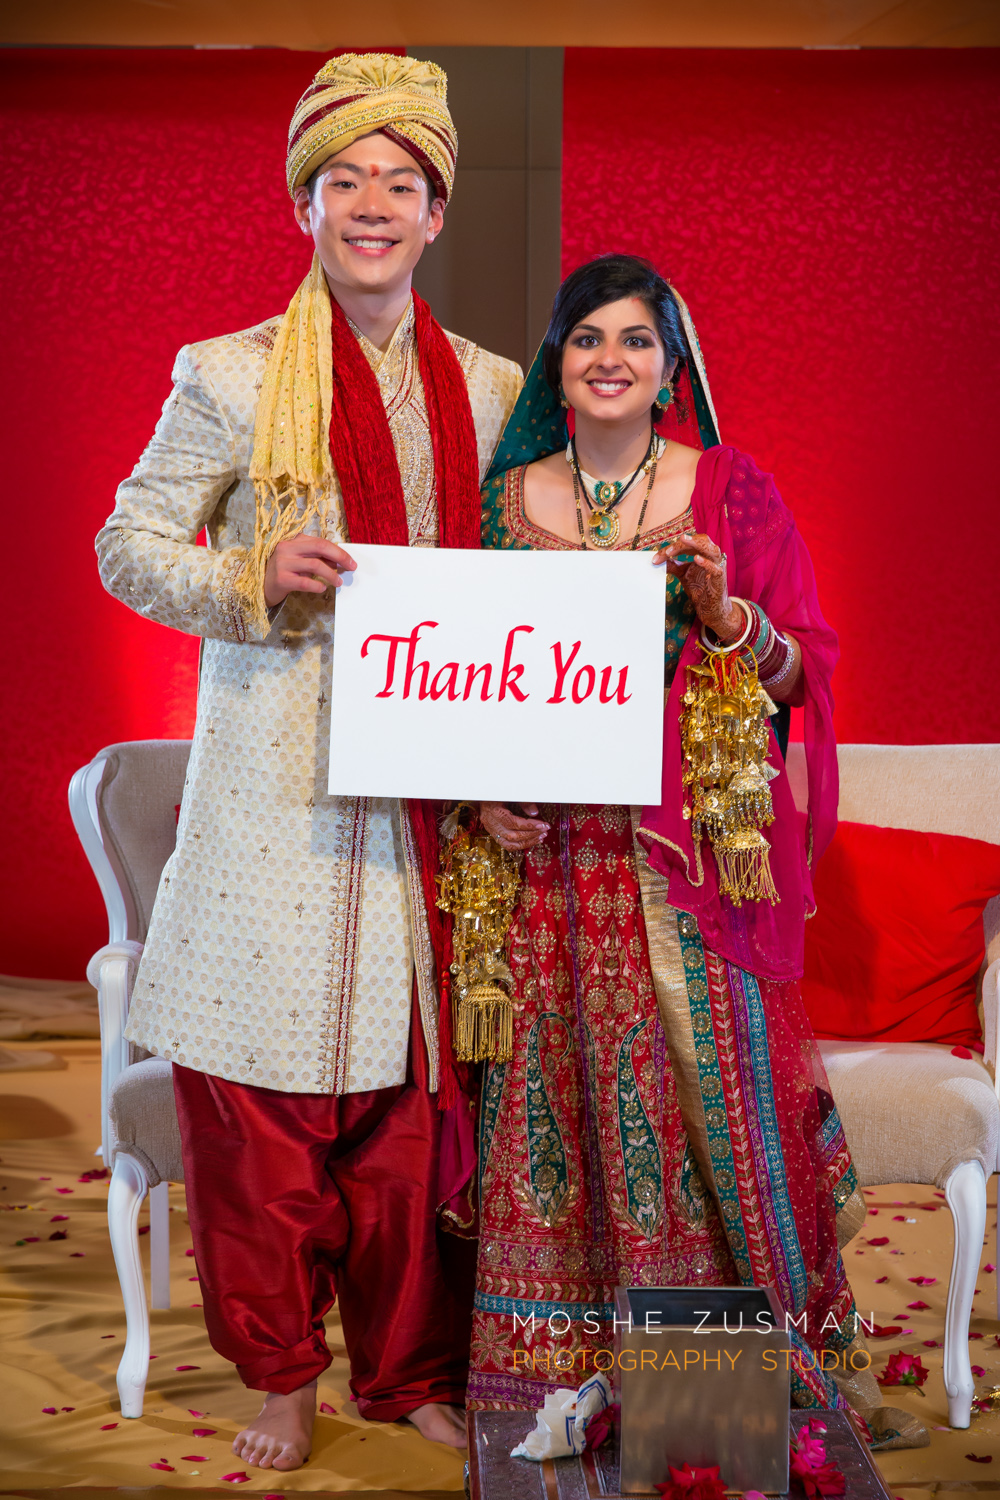 Indian_Wedding_Photography_Moshe_Zusman_Mandarin_Oriental_DC_Naina_Chris-42.jpg